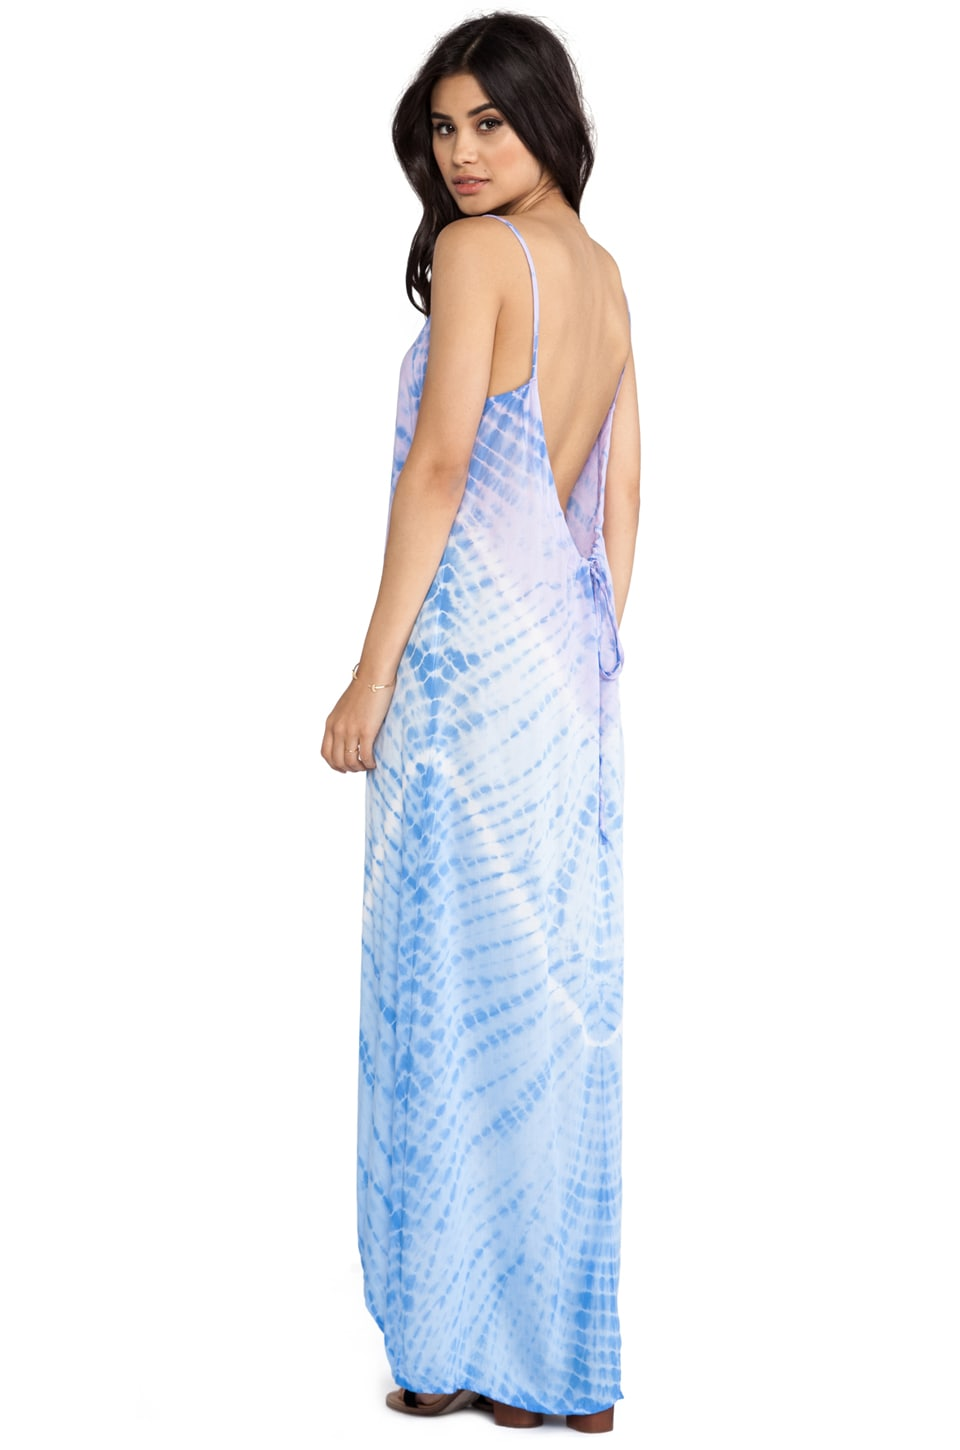 Tiare Hawaii Sandy Maxi Dress in Violet & Blue Violet Vibe